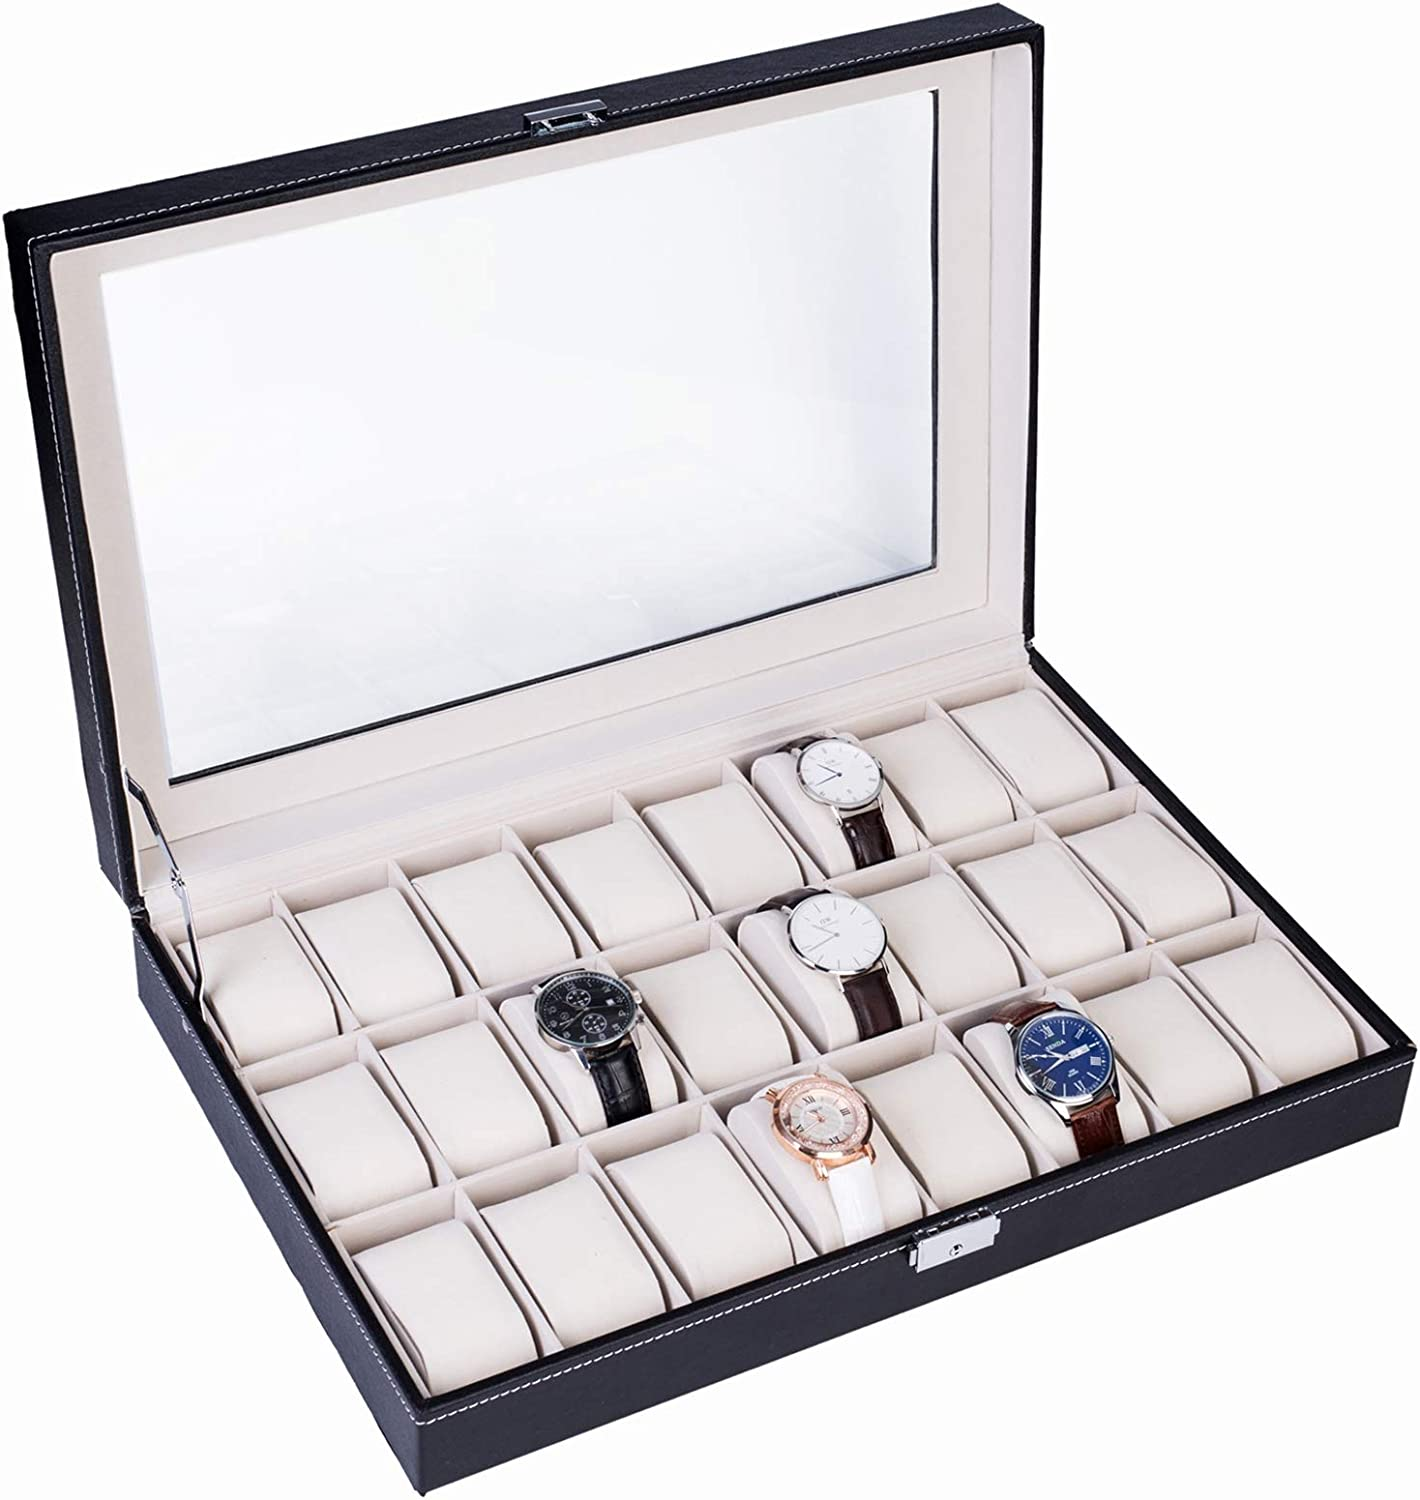 IFR NEW Limited time for free shipping before selling ☆ Watch Cabinets Cases 24 Sty Opening Compartments Top-level